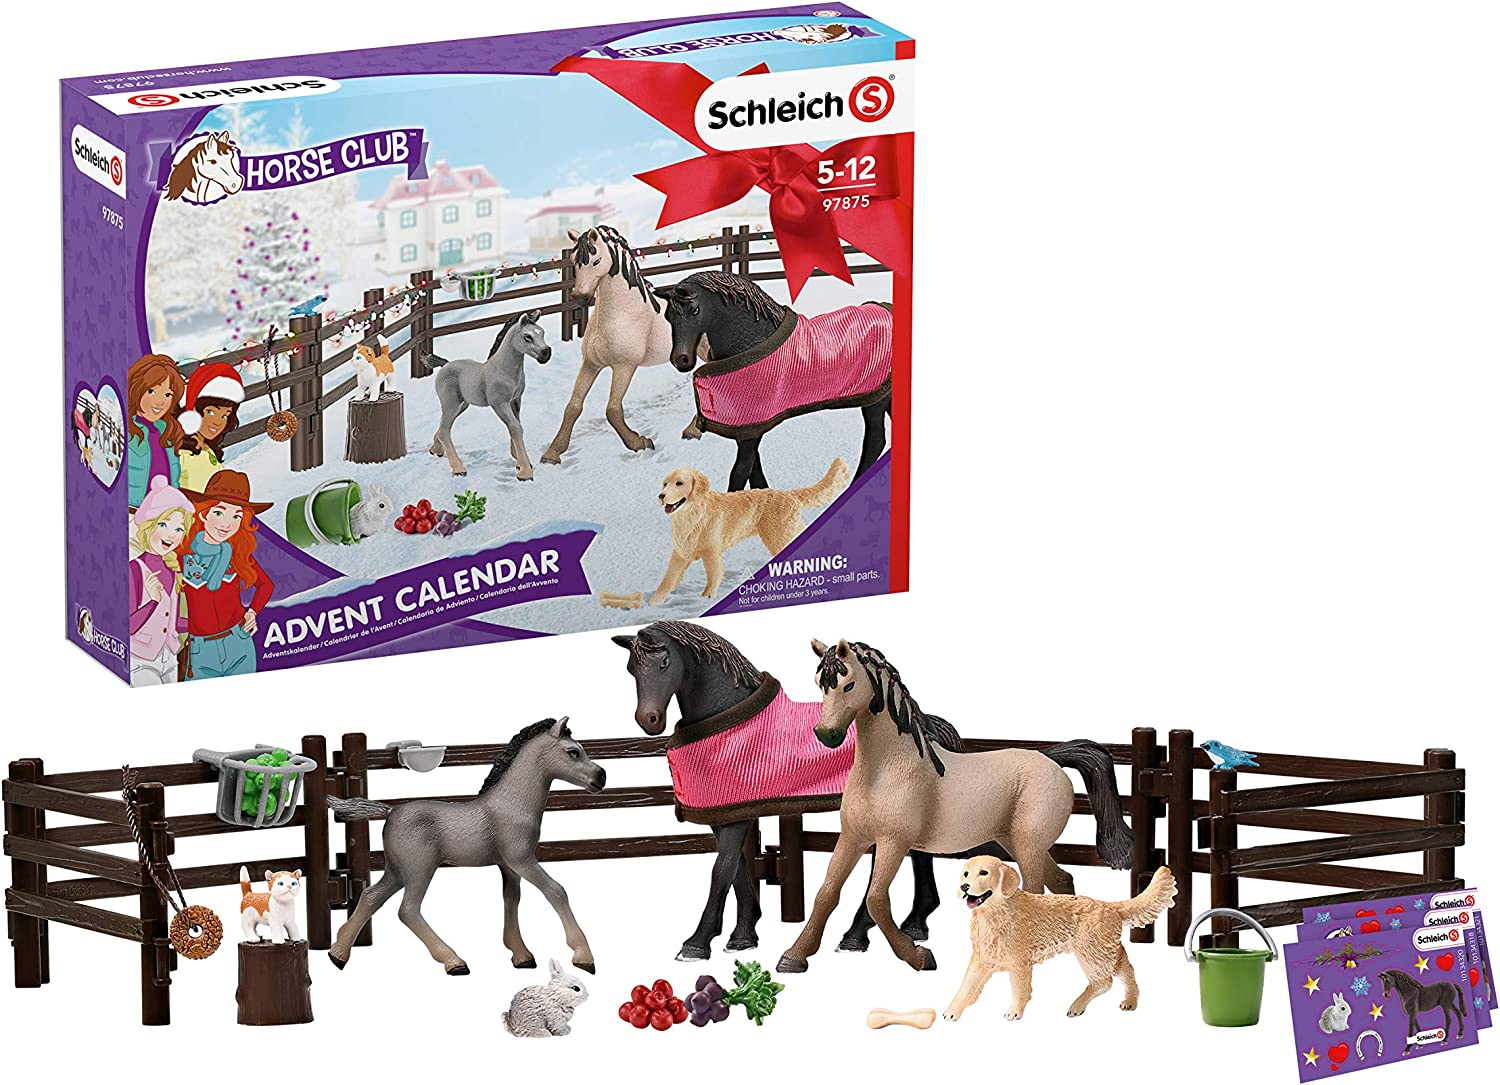 Schleich- Calendario de Adviento 2019, Colección Horse Club, Color lila (97875)